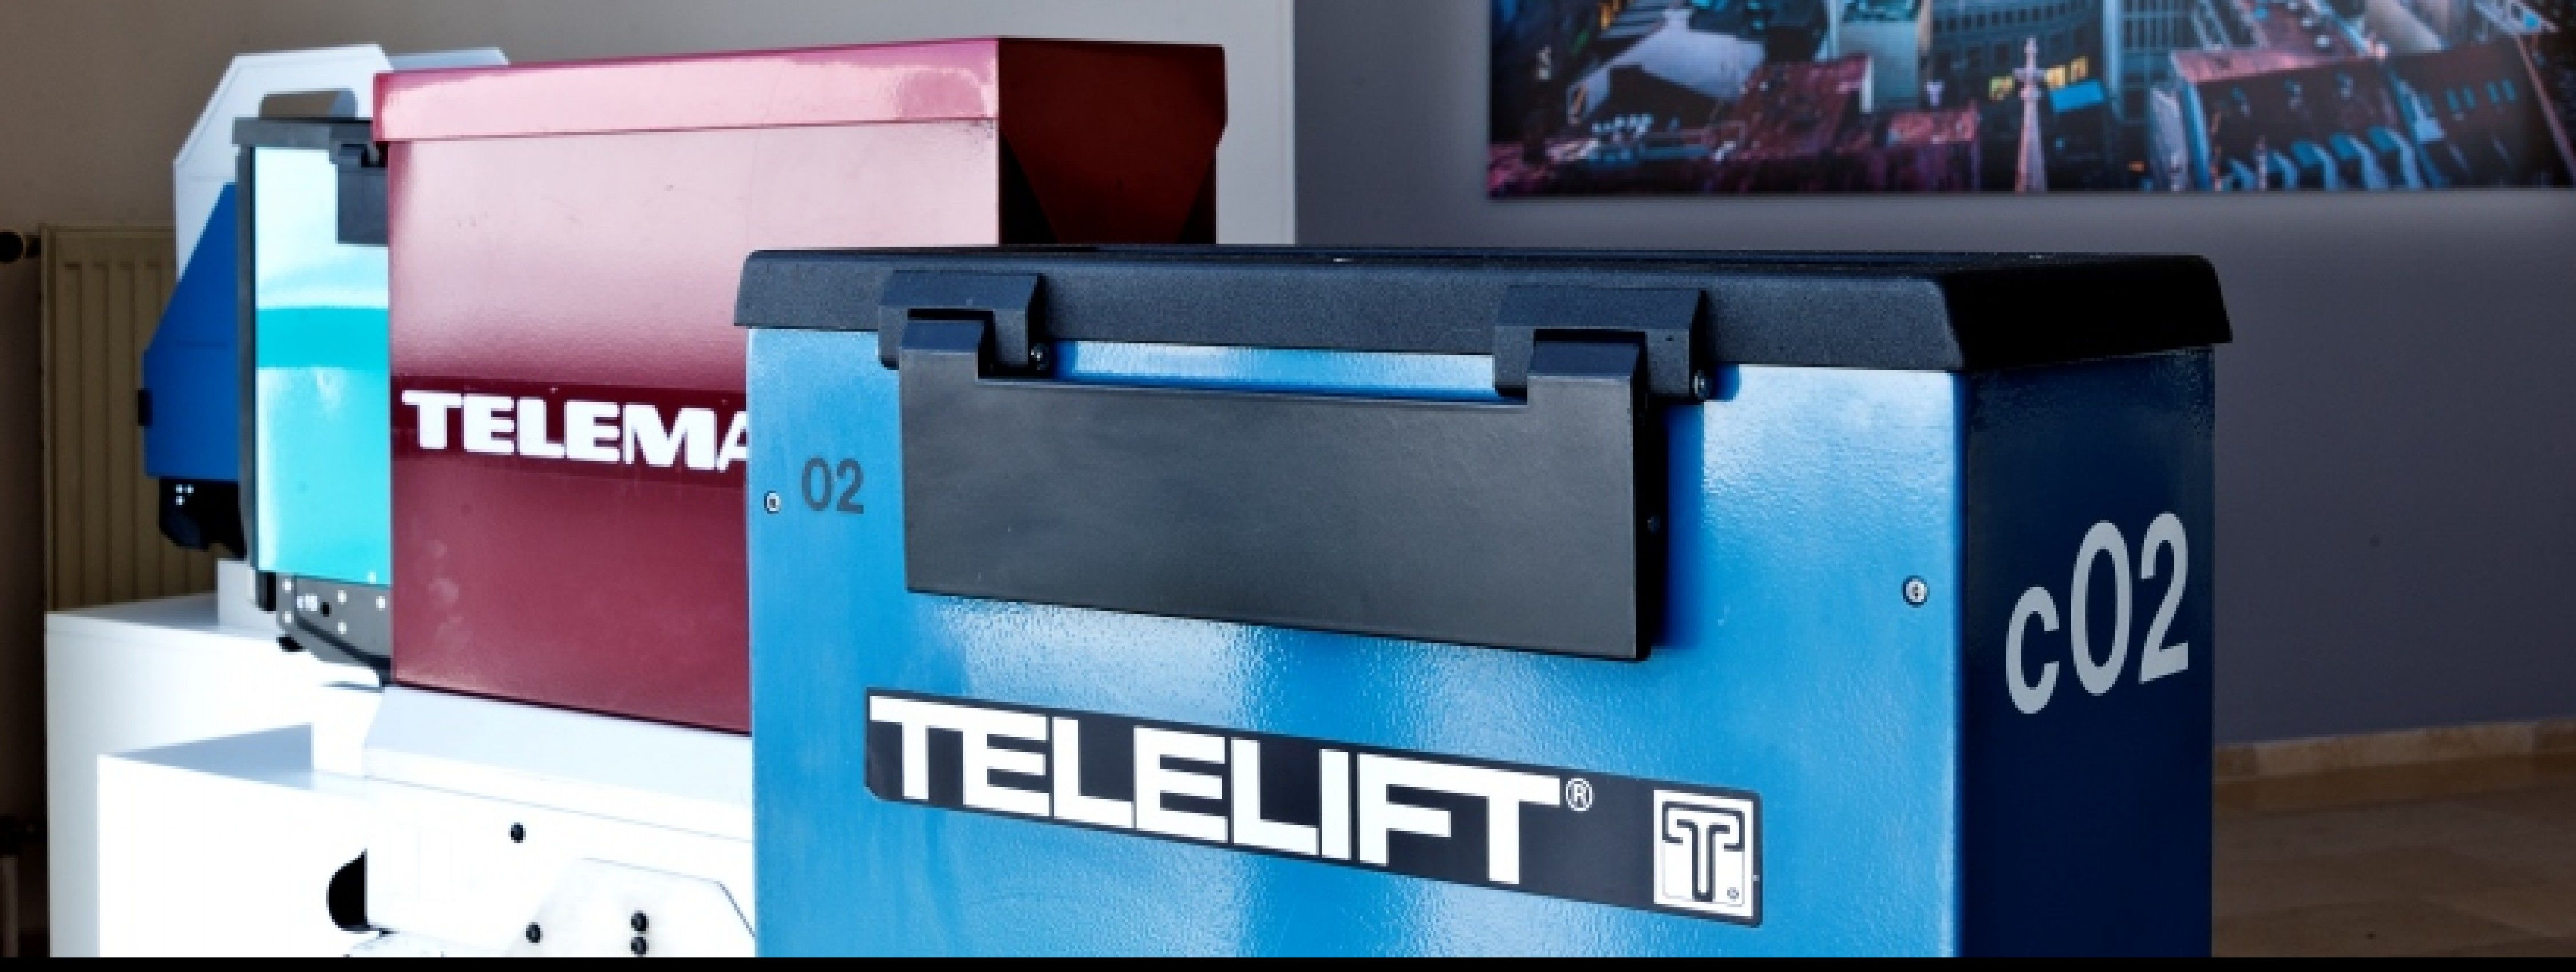 Telelift history